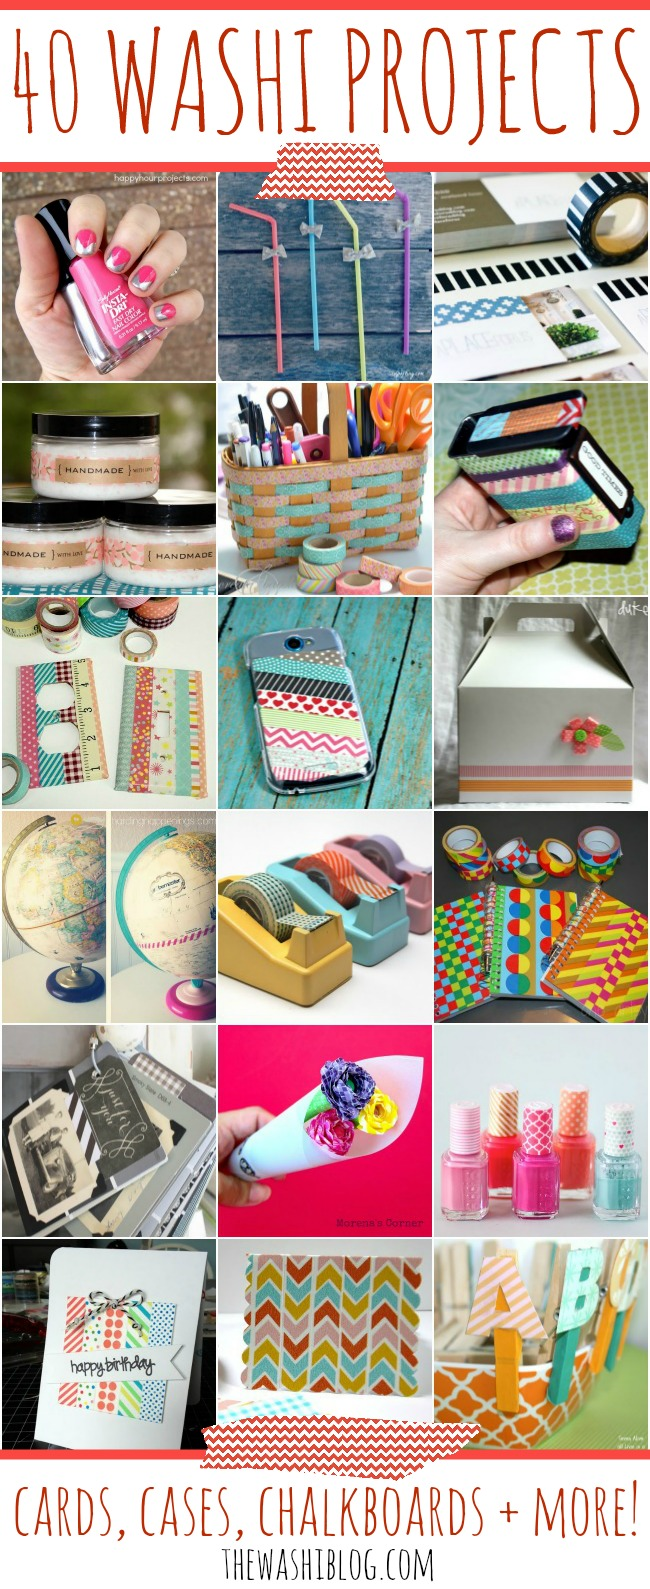 40 Washi Tape Projects – Cards, Cases, Chalkboards and More!